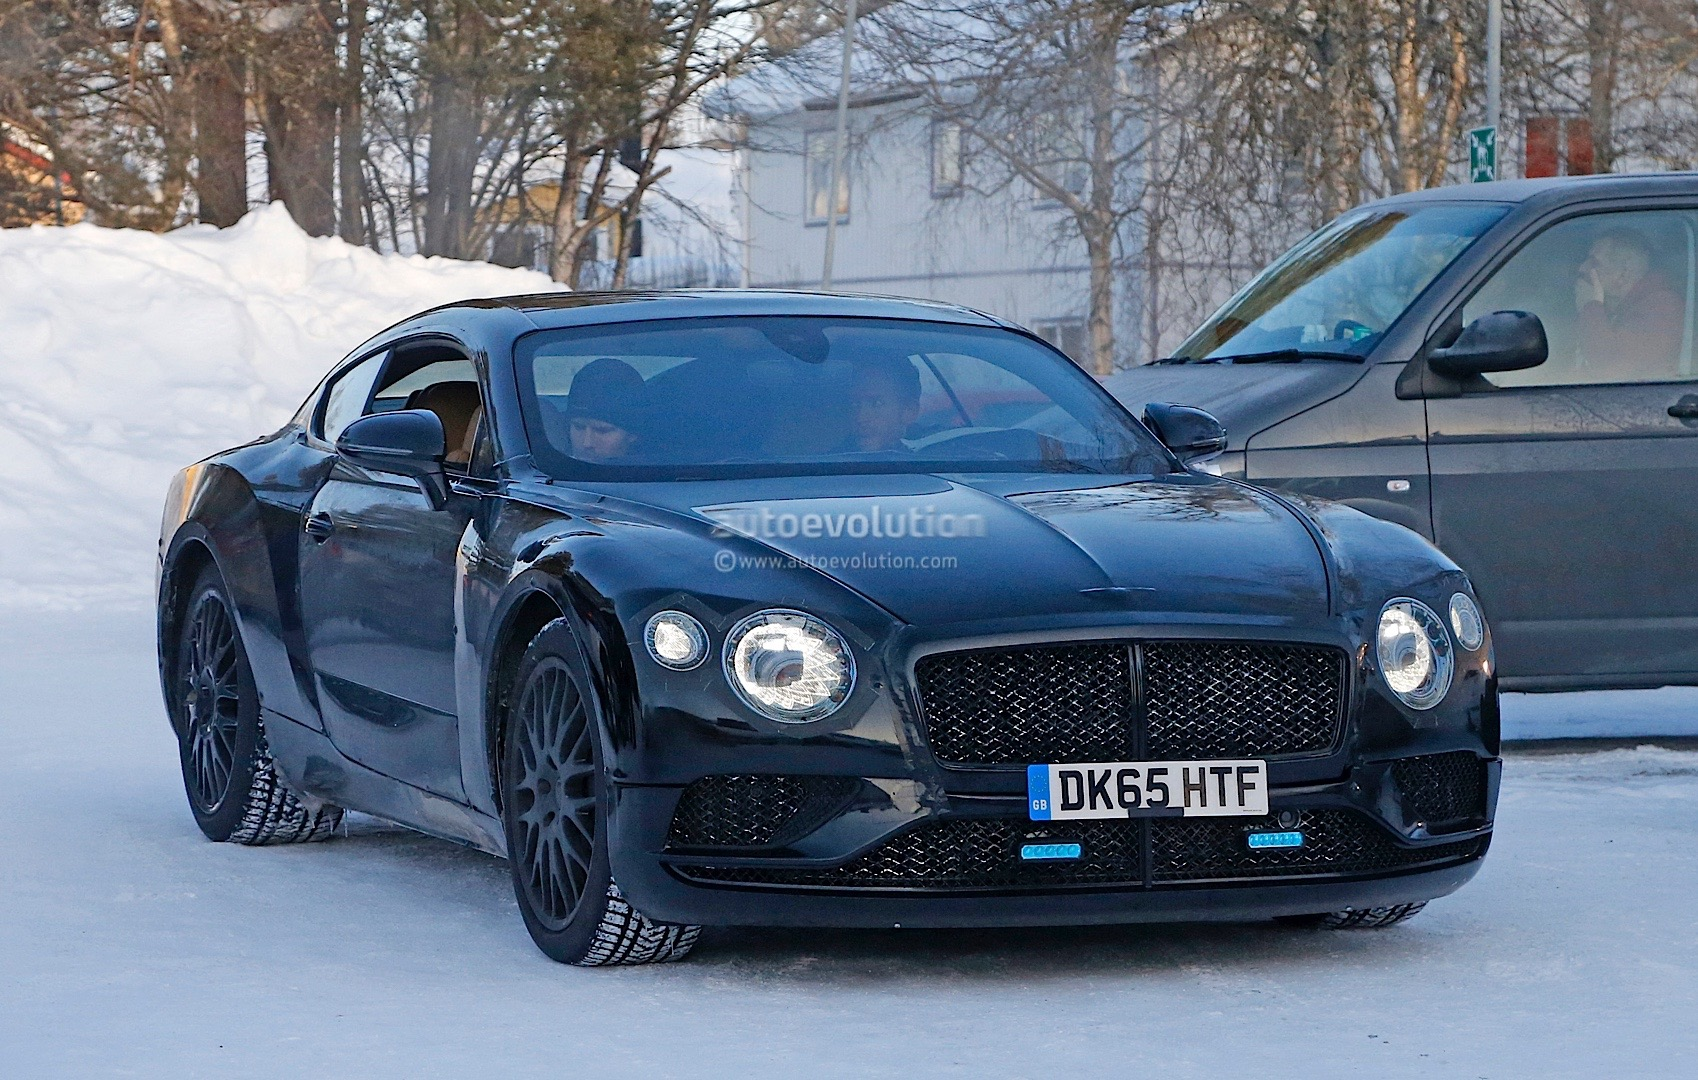 2018 bentley continental gt spied again exp 10 speed 6 headlights look fabulous autoevolution. Black Bedroom Furniture Sets. Home Design Ideas